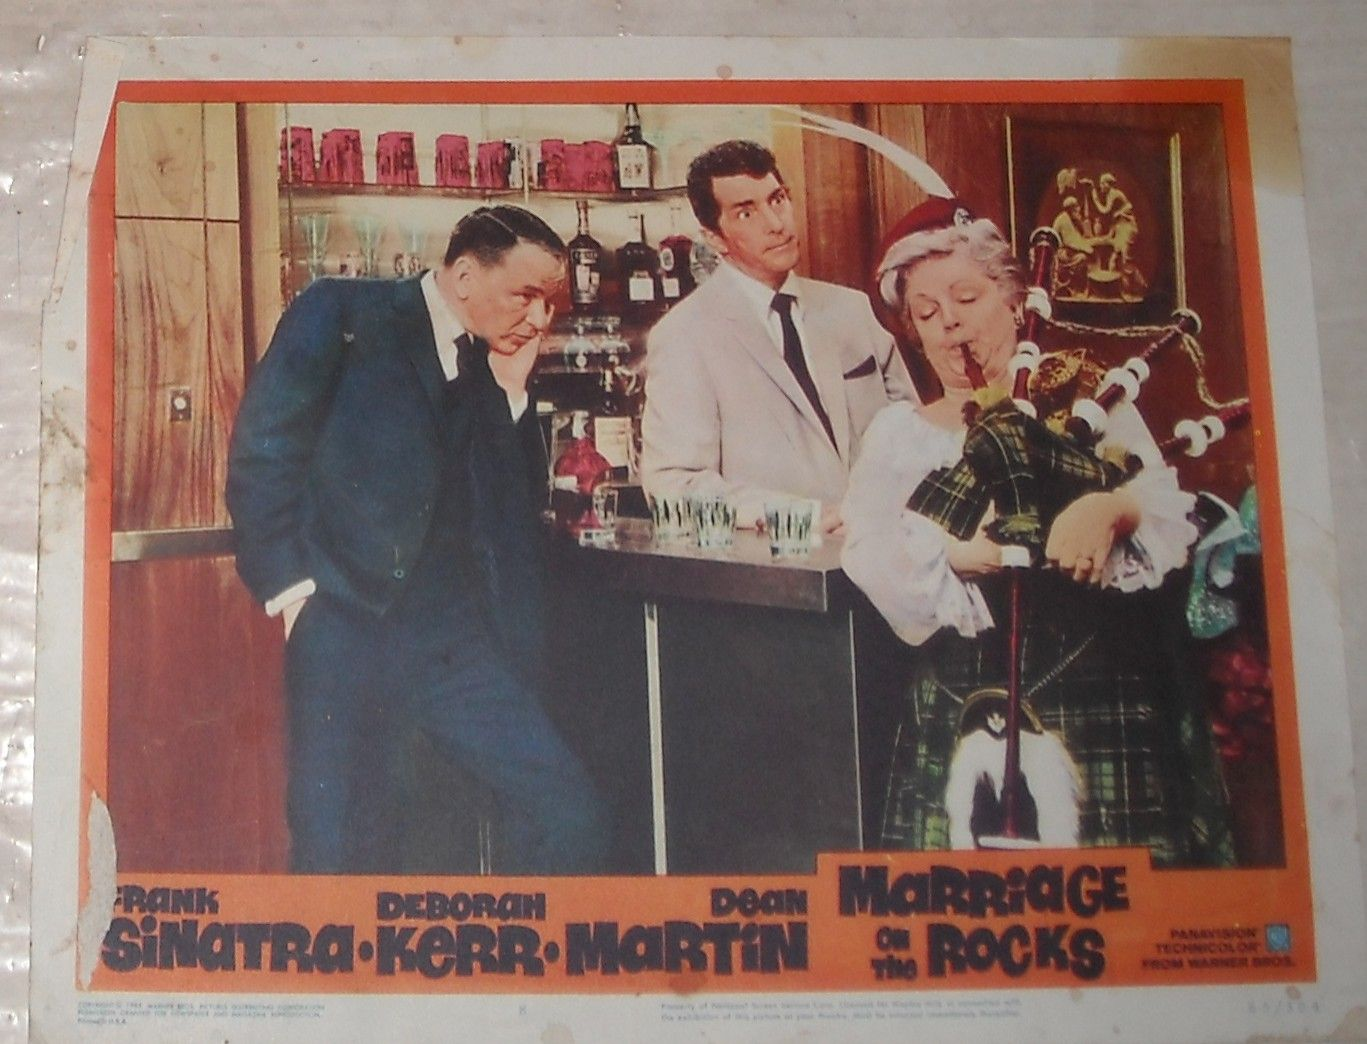 dean martin hard to find pictures | ... on the ROCKS LOBBY CARD 2 FRANK SINATRA DEAN MARTIN DEBORAH KERR